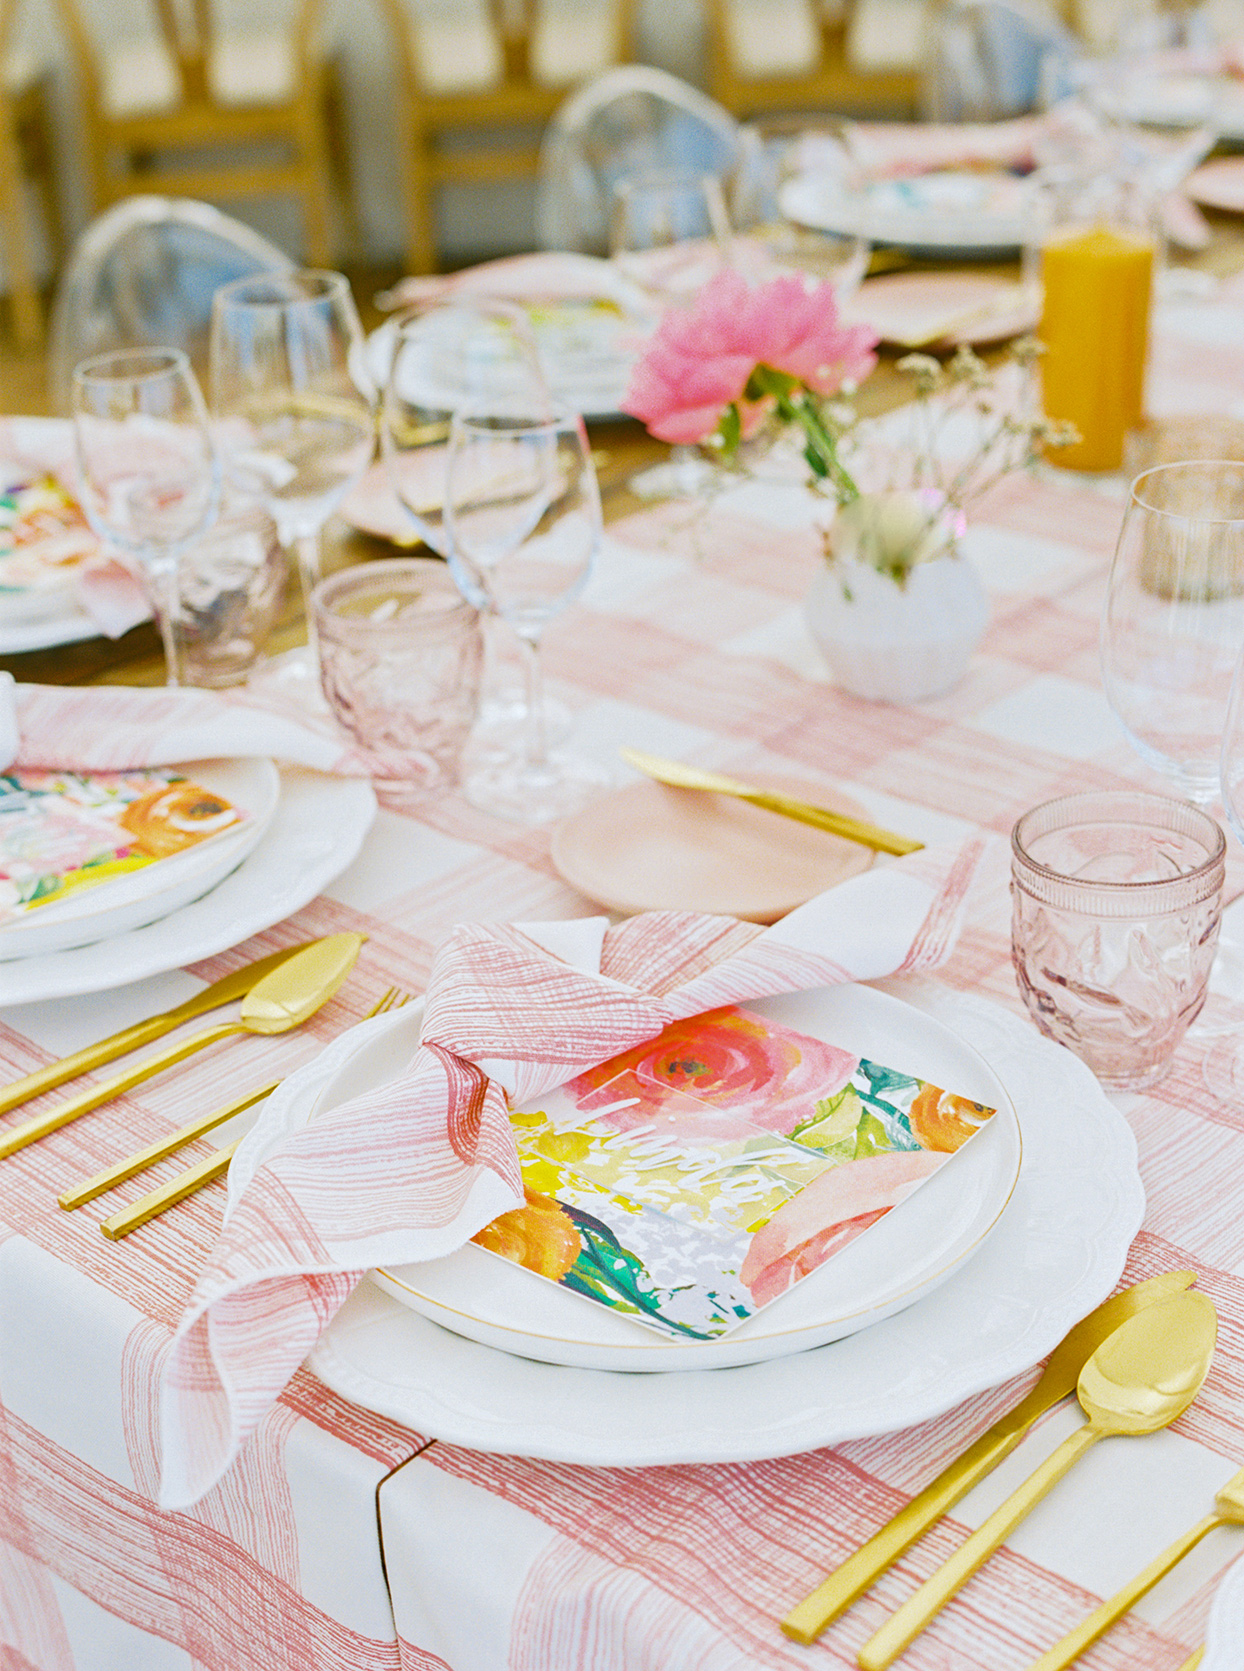 lauren dan wedding colorful place setting with floral place card